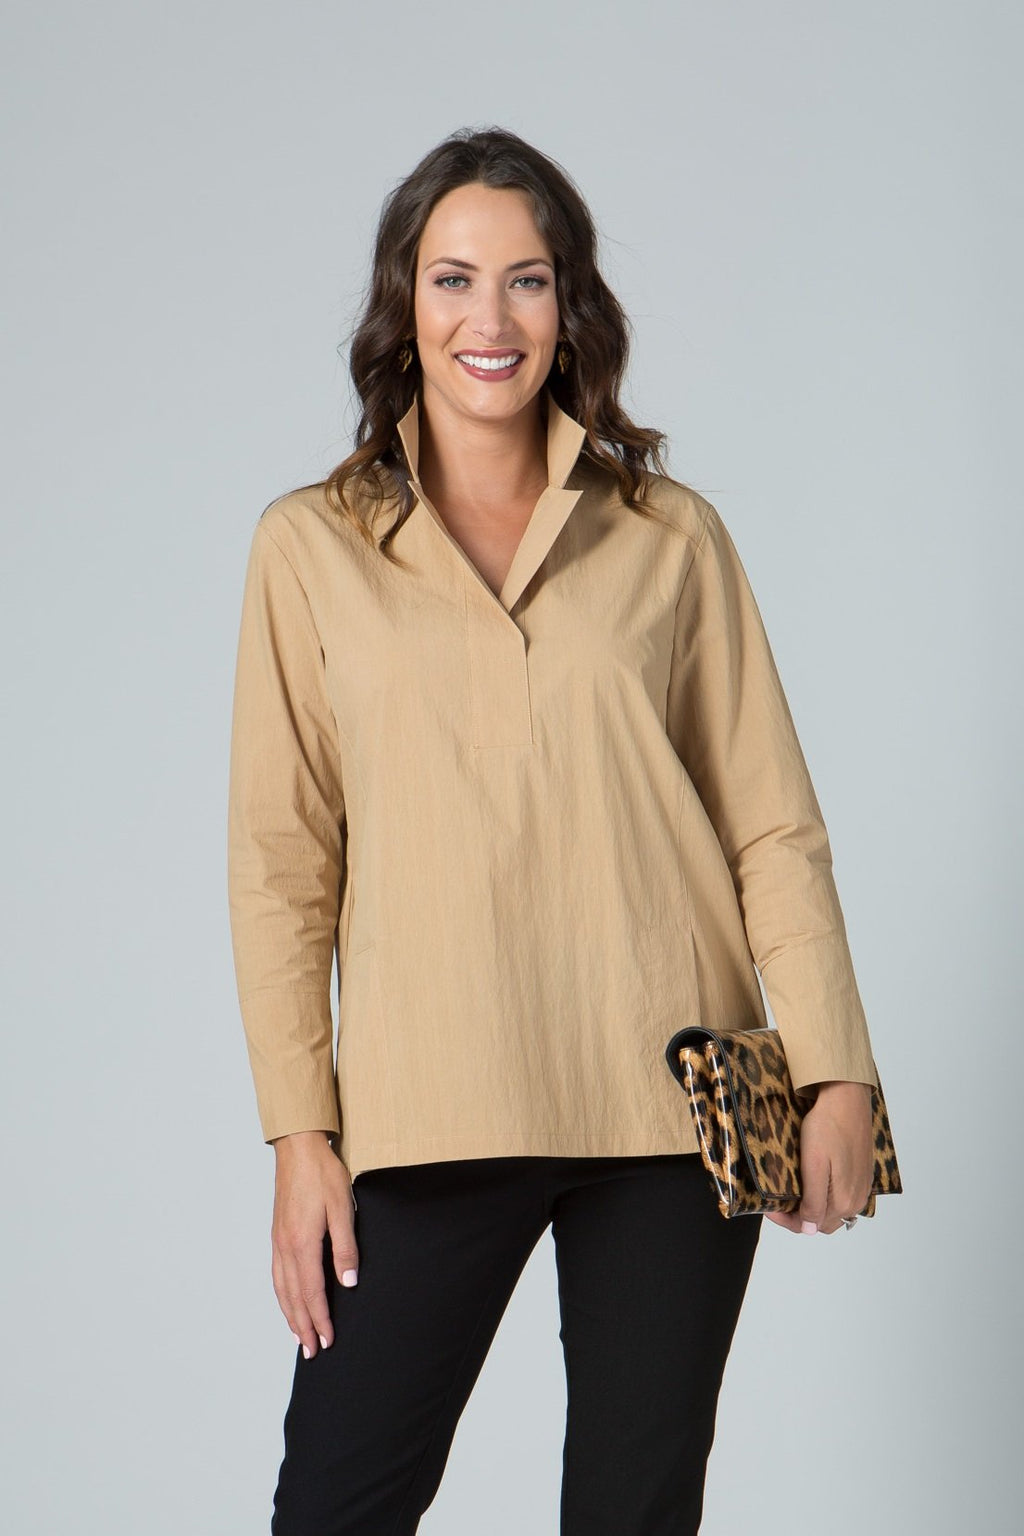 Tunic with Front Slits - Amélline - Tops - Blouses